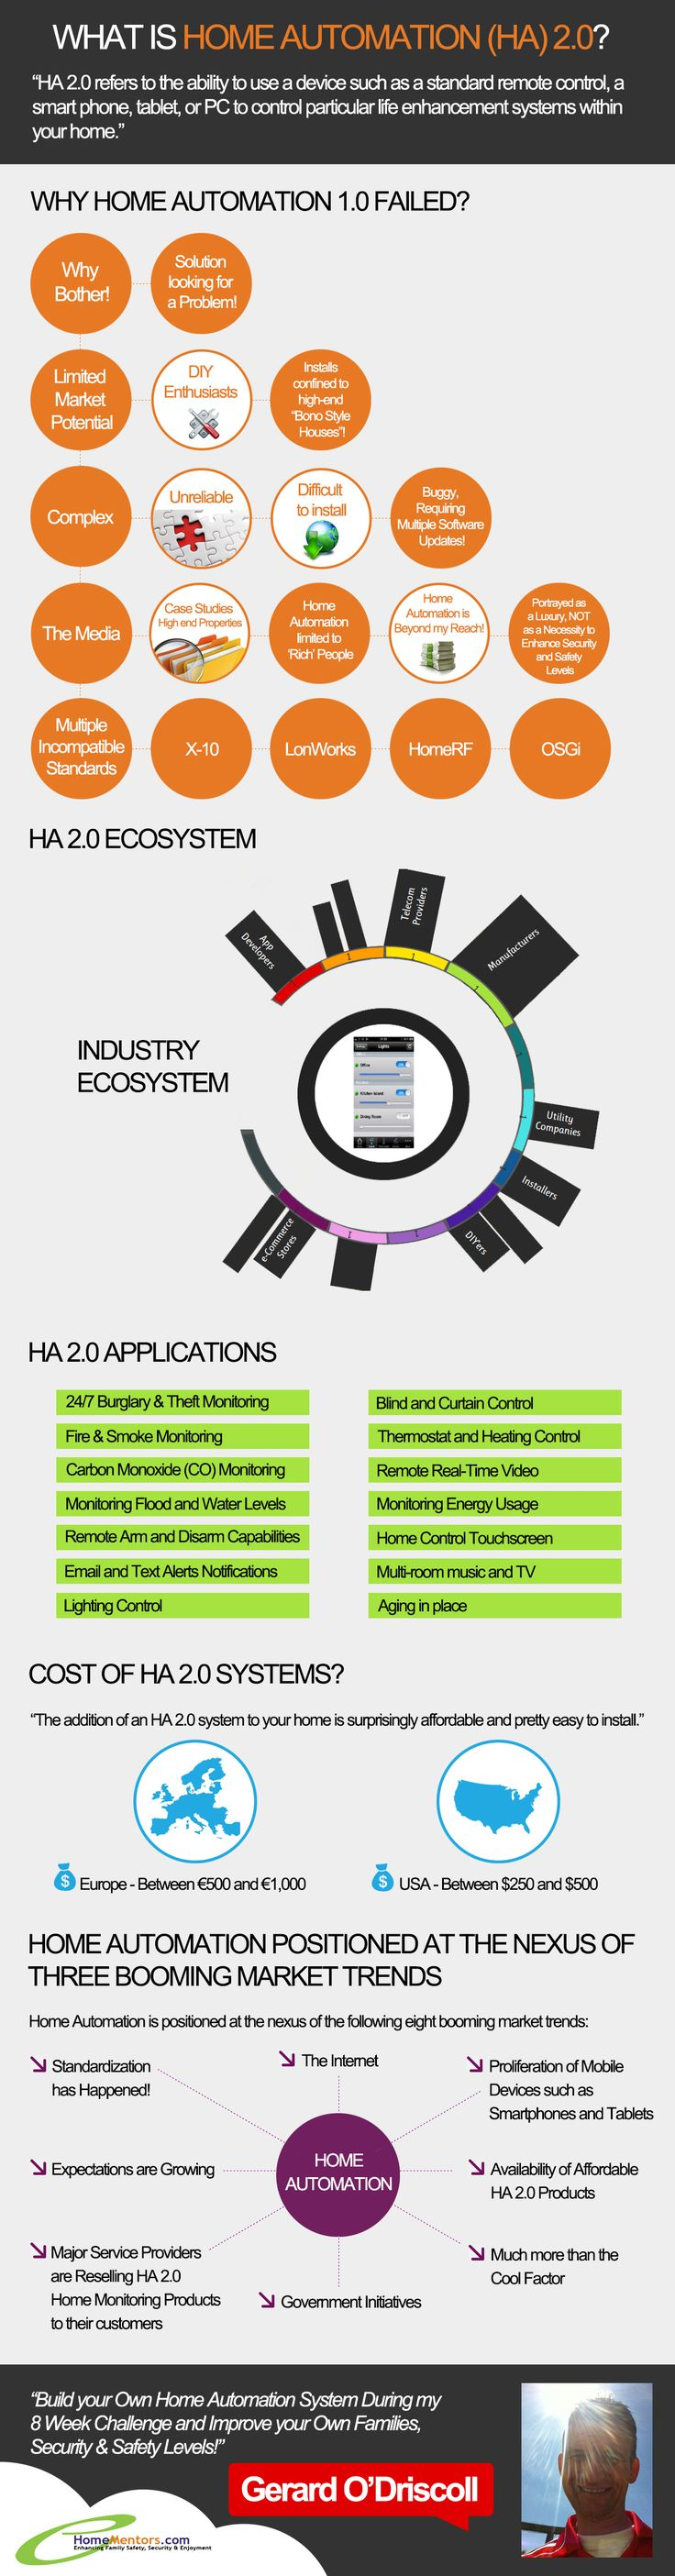 Home automation 2.0 ecosystem